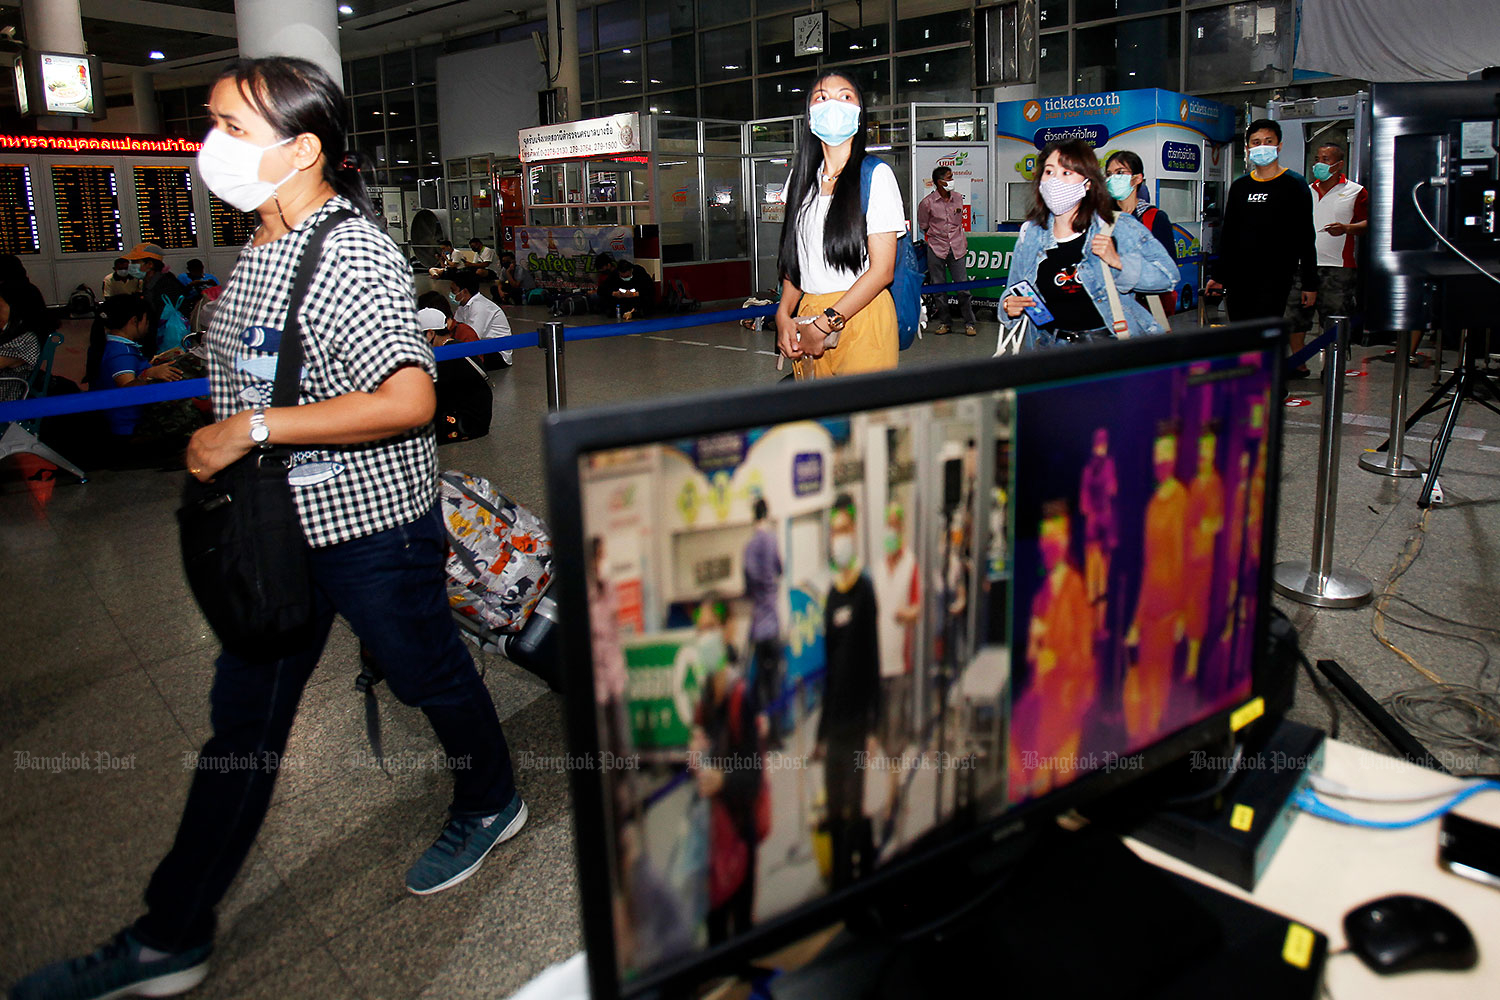 On the lookout: People walk past a thermal scanner as they make their way into the terminal at the Mor Chit bus depot in angkok yesterday. The state-owned Transport Company announced it was putting more inter-provincial buses into service during the long weekend to cope with the exodus of holidaymakers. (Photo by Nutthawat Wicheanbut)